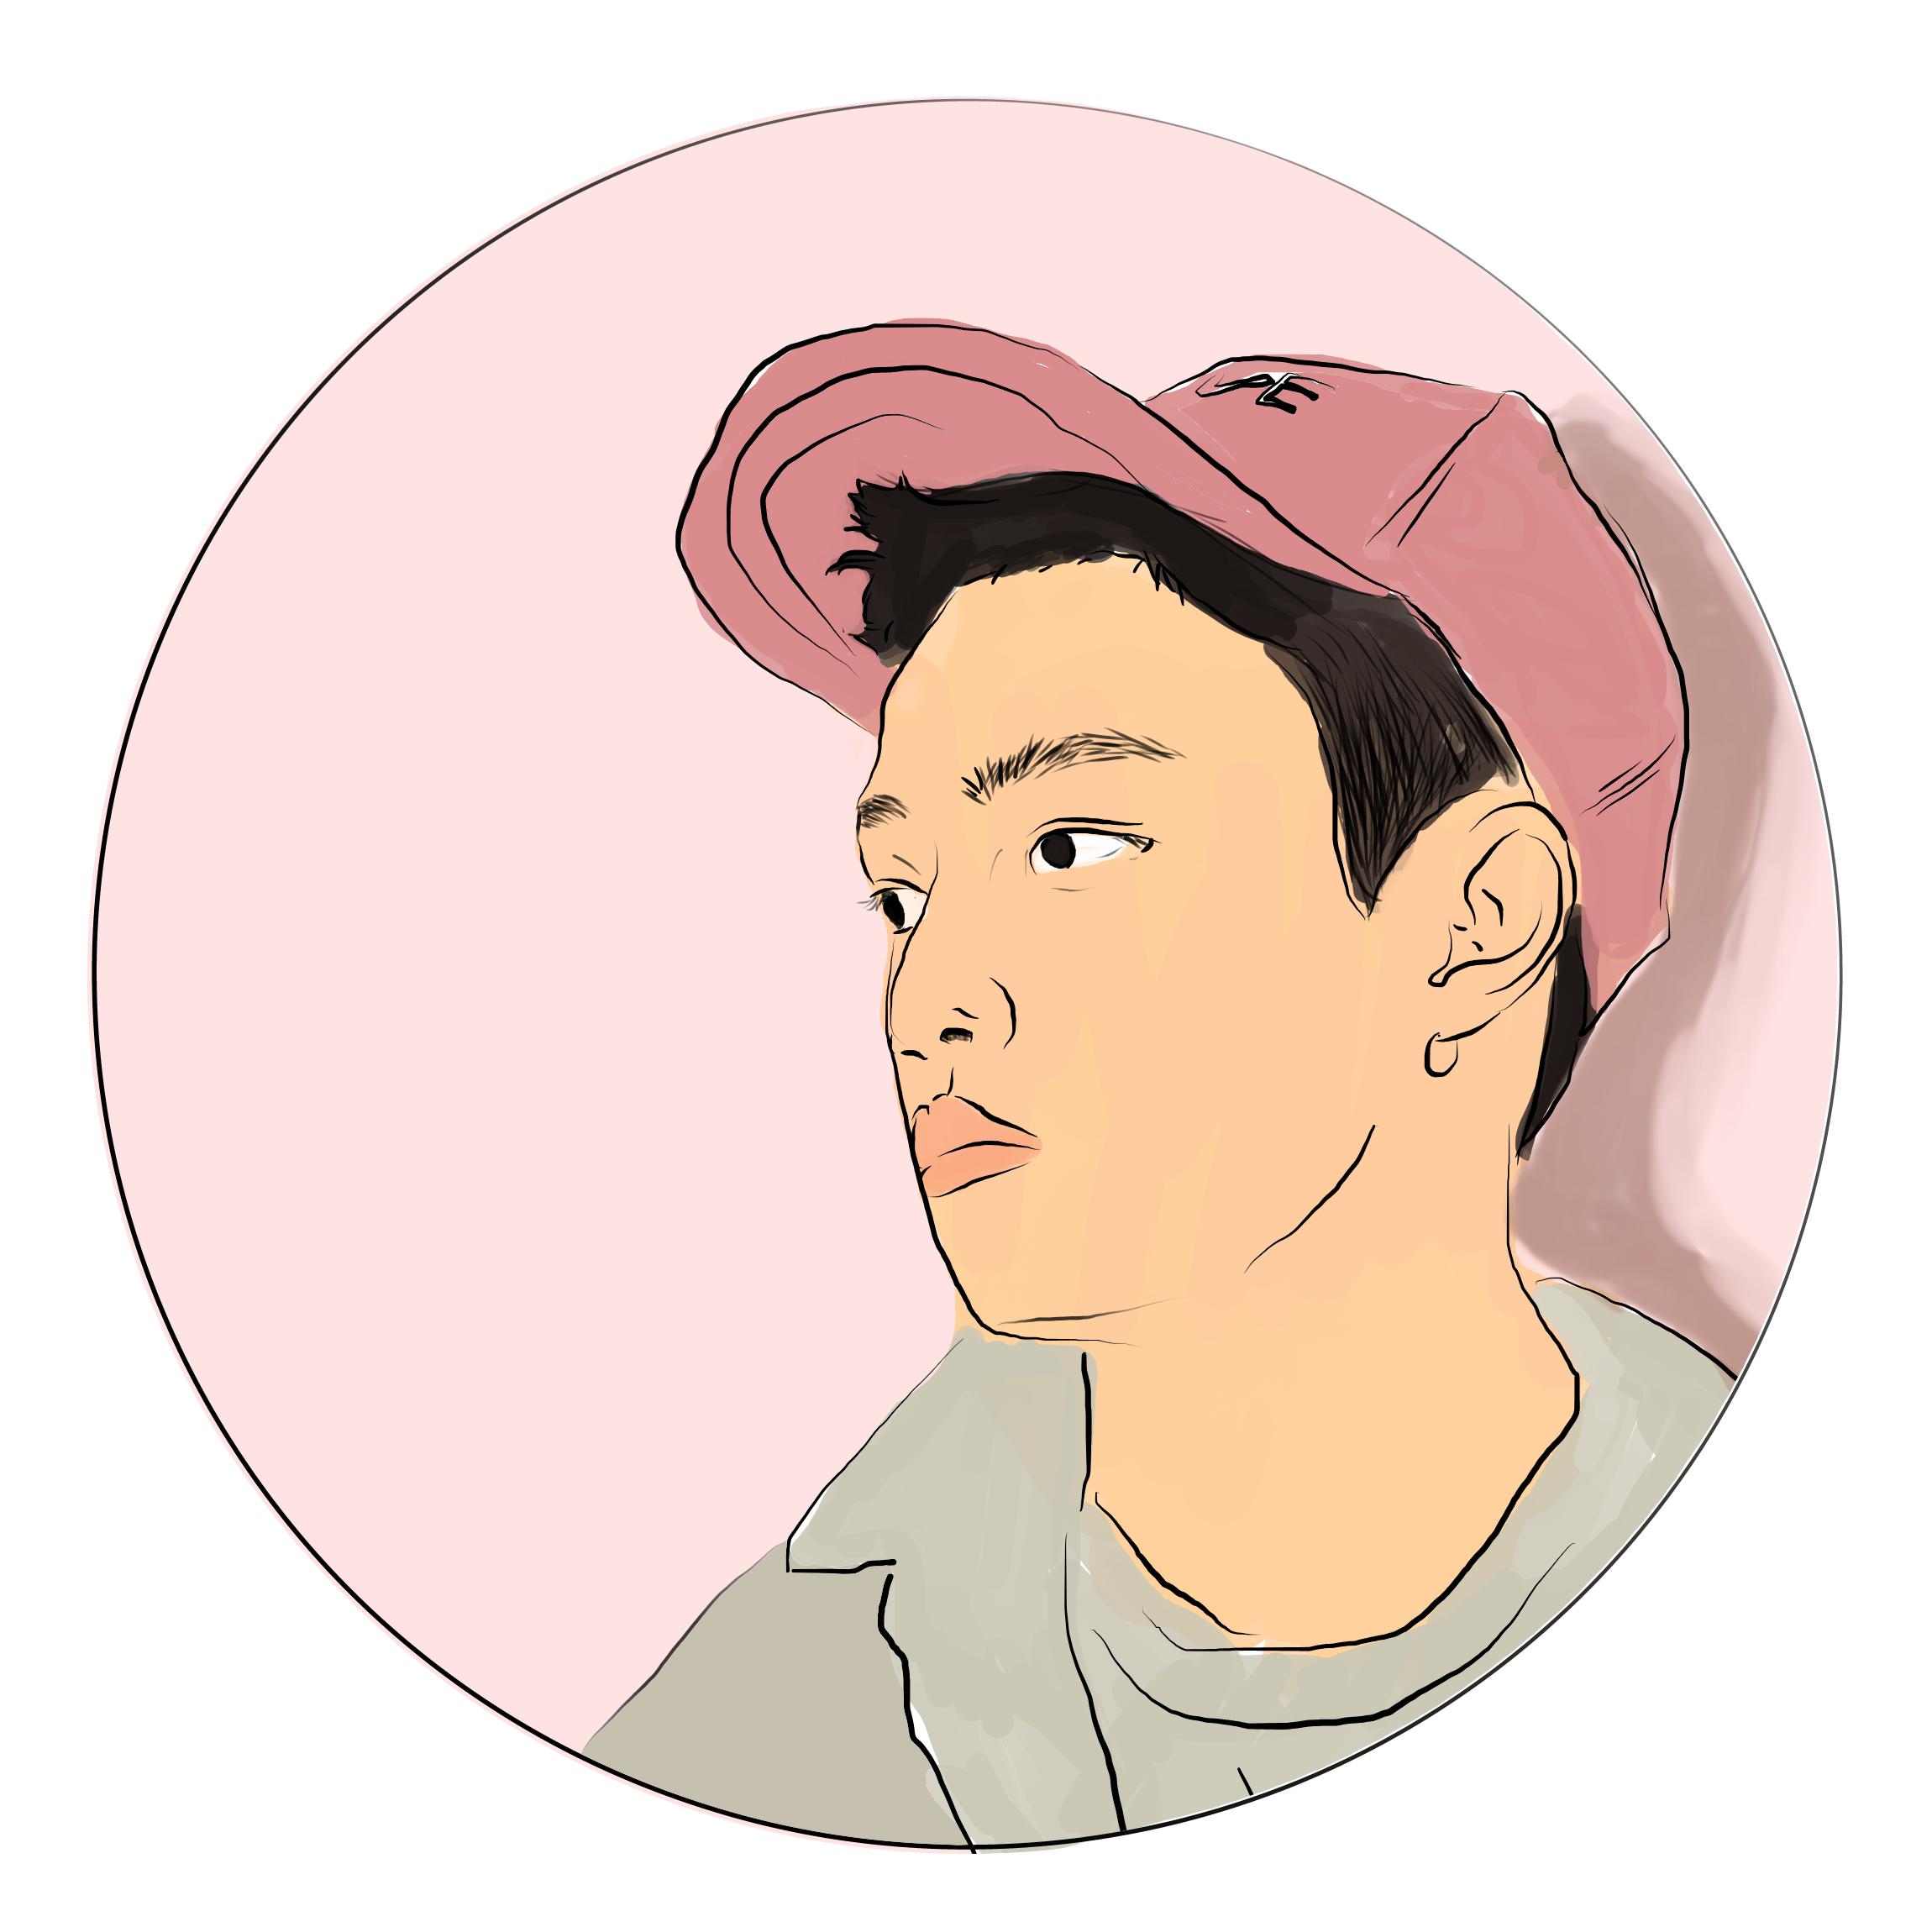 Chanyeol transparent circle. A sticker design of